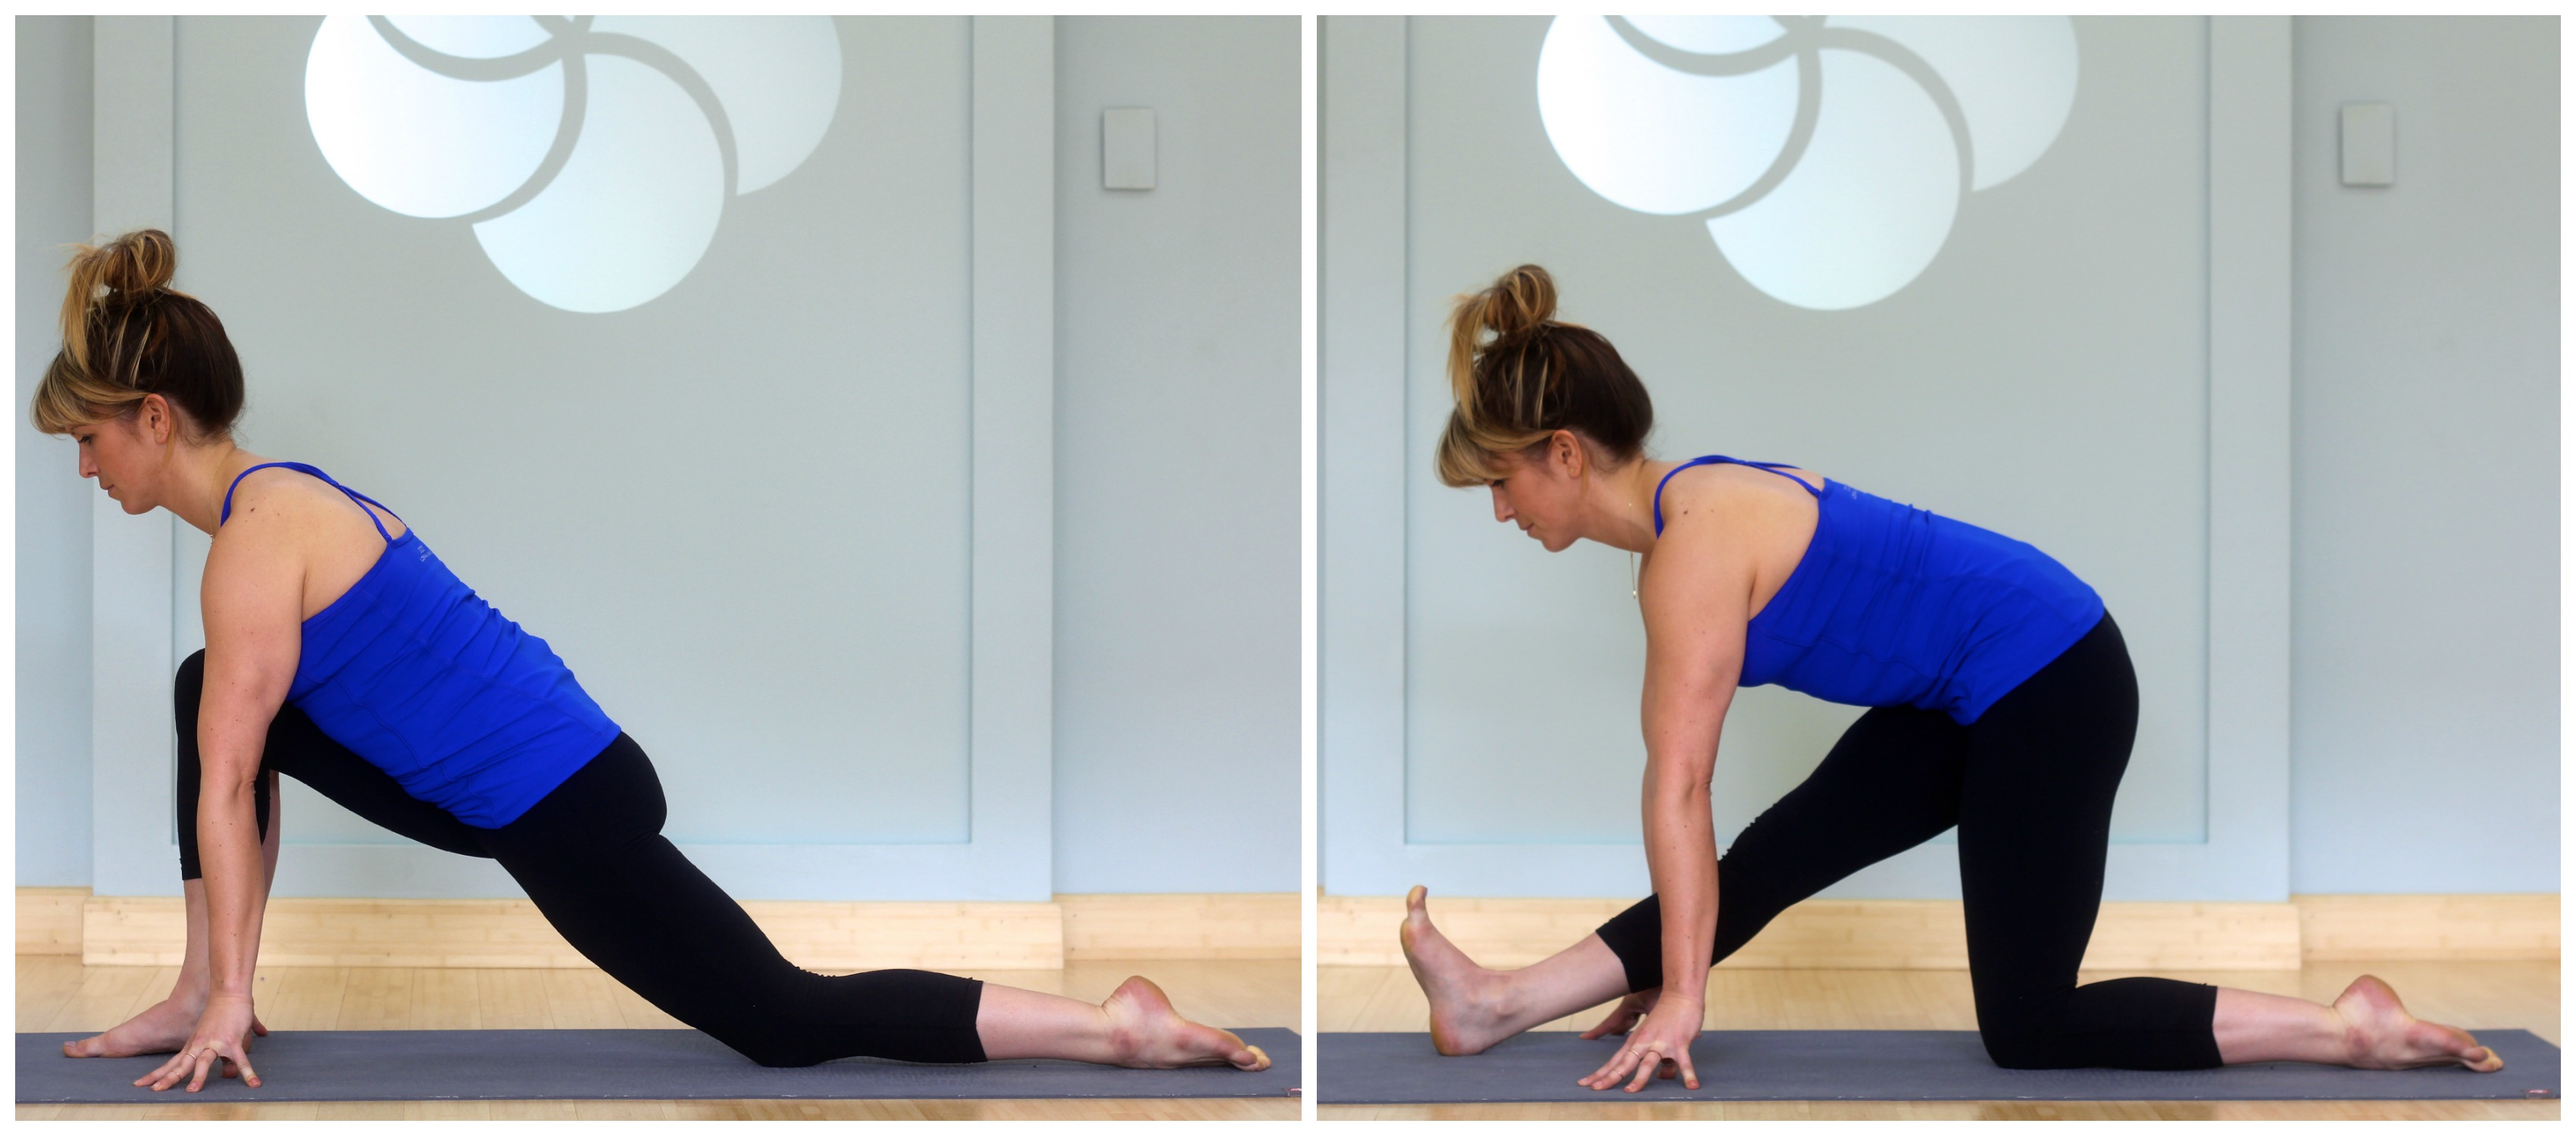 What are some of the easy Yoga exercises one can do to improve health? 4